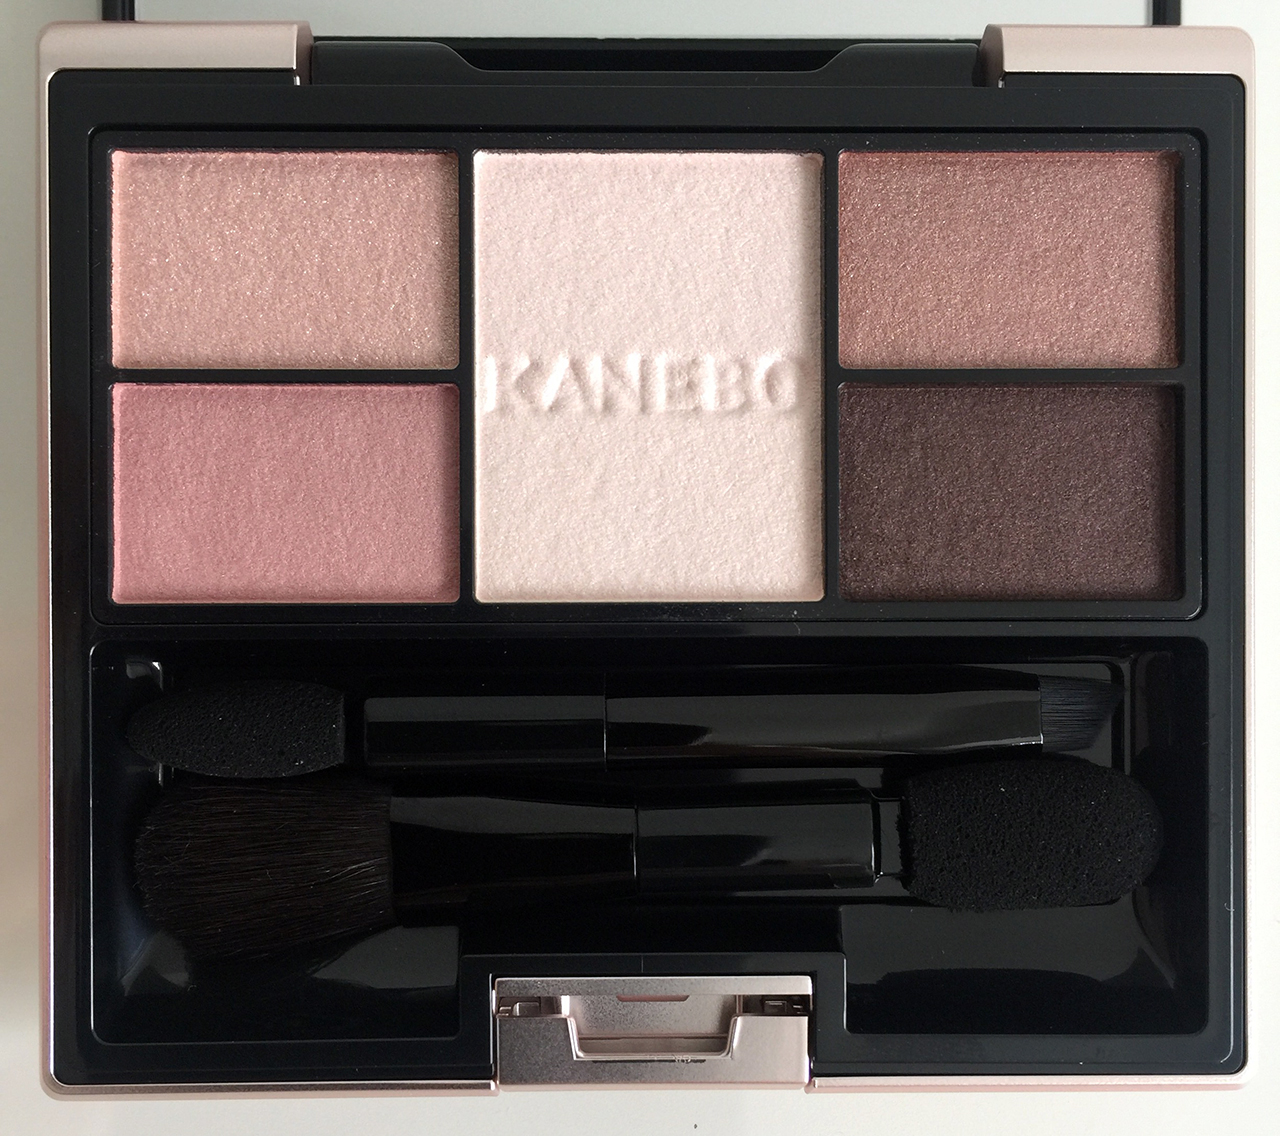 Kanebo Selection Colors Eyeshadow Gently Pink